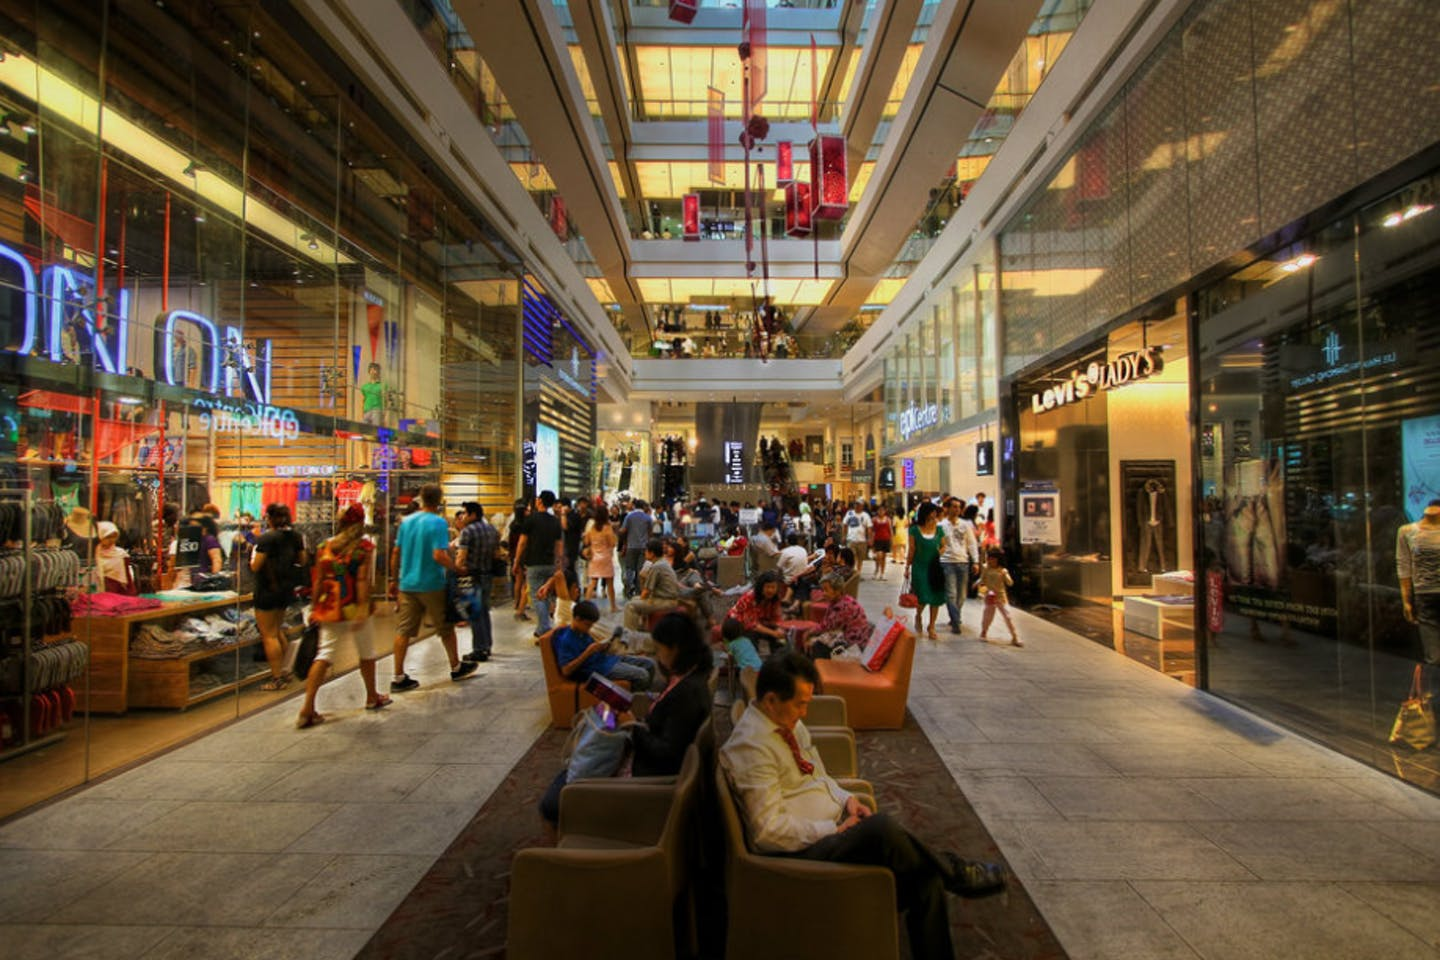 """A shopping mall in Singapore. More than half of Singapore consumers believe businesses have a responsibility to ensure their supply chains are free from environmental harm or negative social practices. Image: <a href=""""https://www.flickr.com/photos/levoodoo/4391795562/"""">Lip Jin Lee</a>, <a href=""""https://creativecommons.org/licenses/by-nc/2.0/"""">CC BY-NC 2.0</a>"""